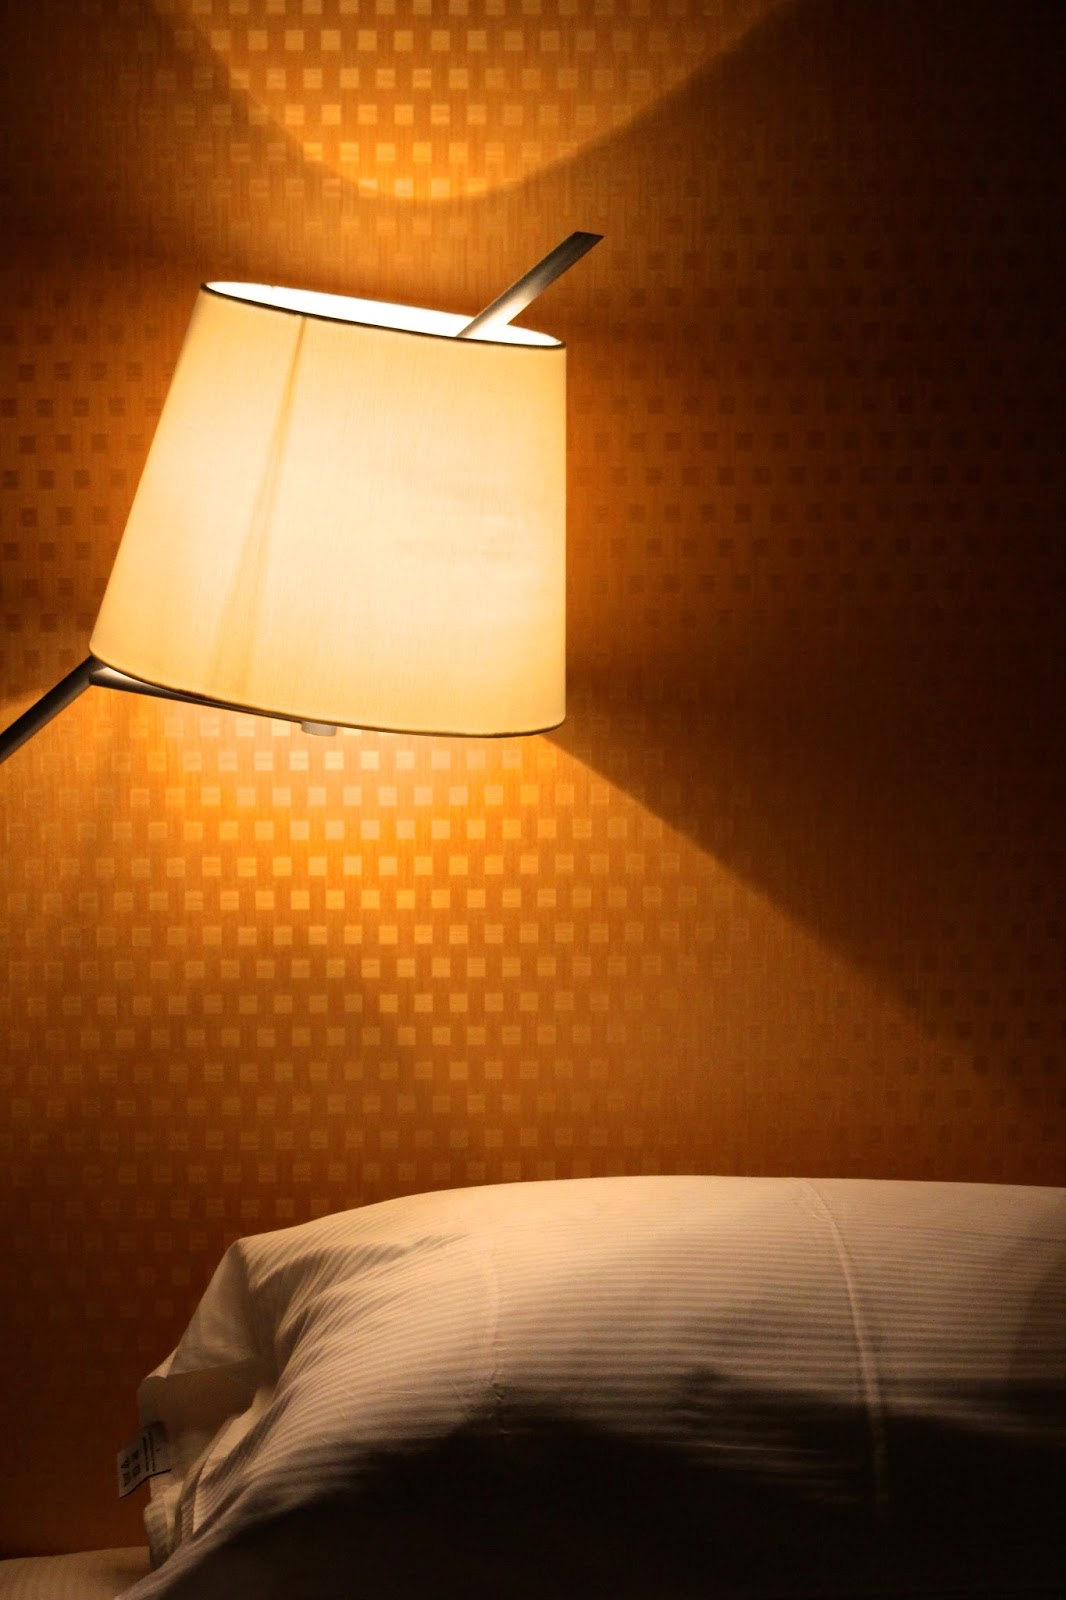 Hilton Cologne Bedroom Lighting